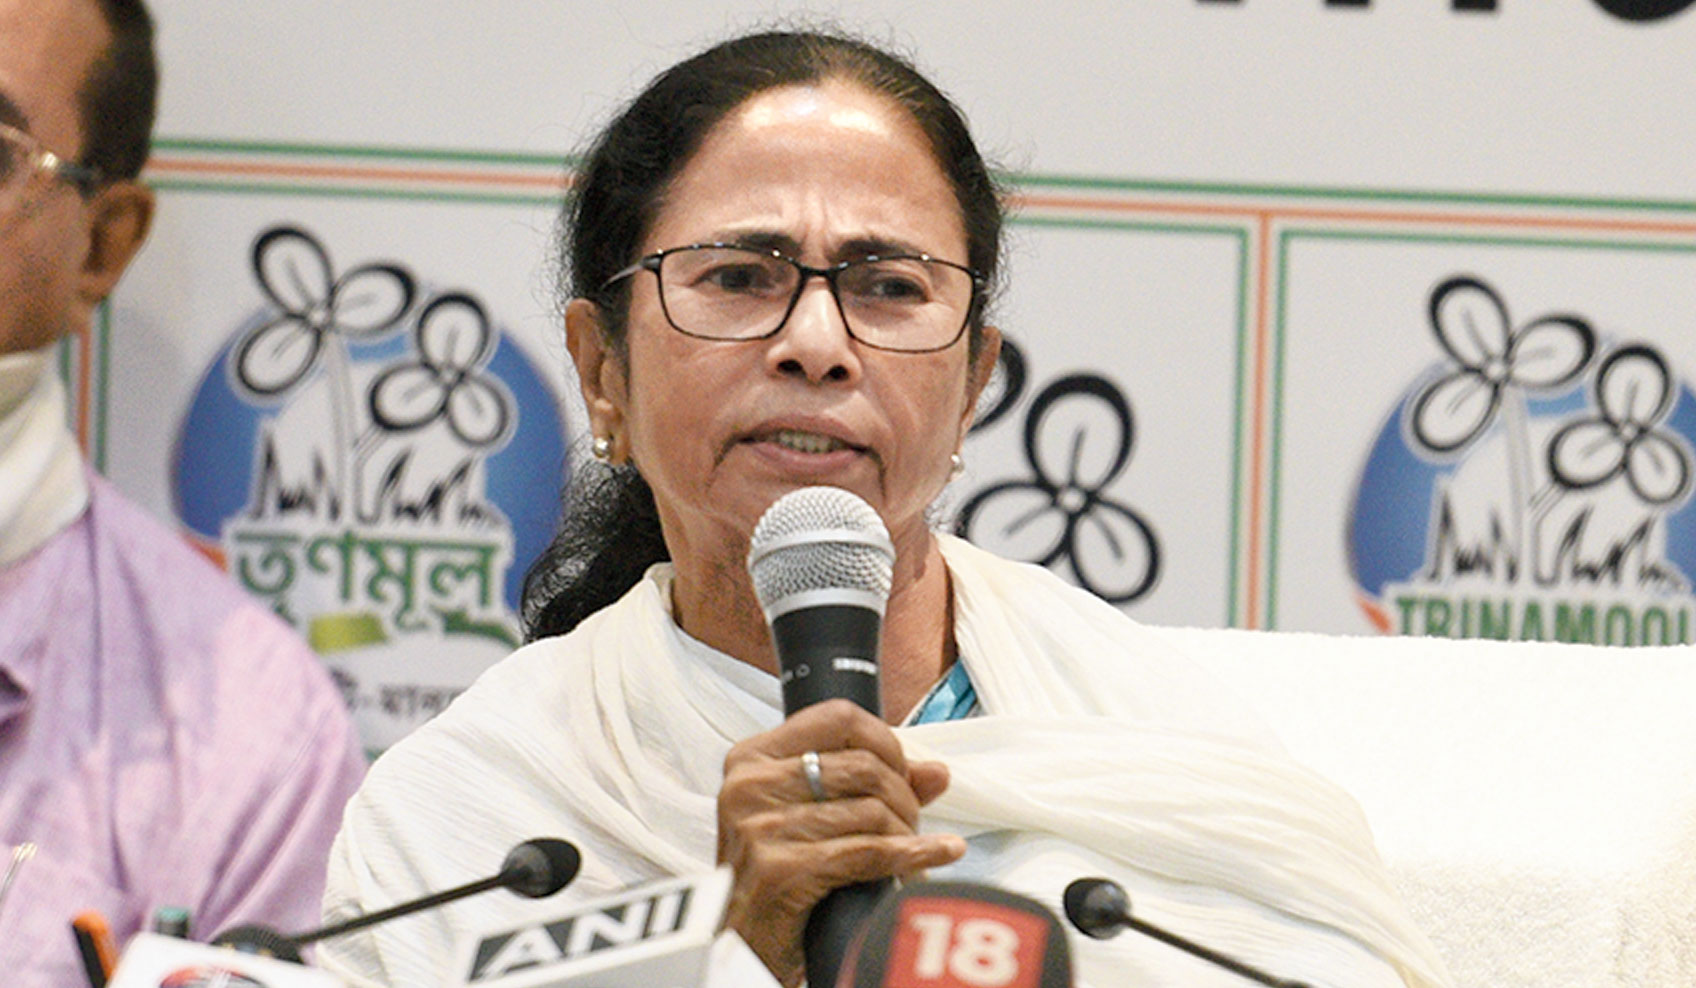 Trinamul sources said the initial burst of calls and messages can be categorised broadly into congratulatory ones thanking Mamata for giving them a chance to connect, grievances highlighting how government benefits are eluding deserving citizens and complaints against local leaders.